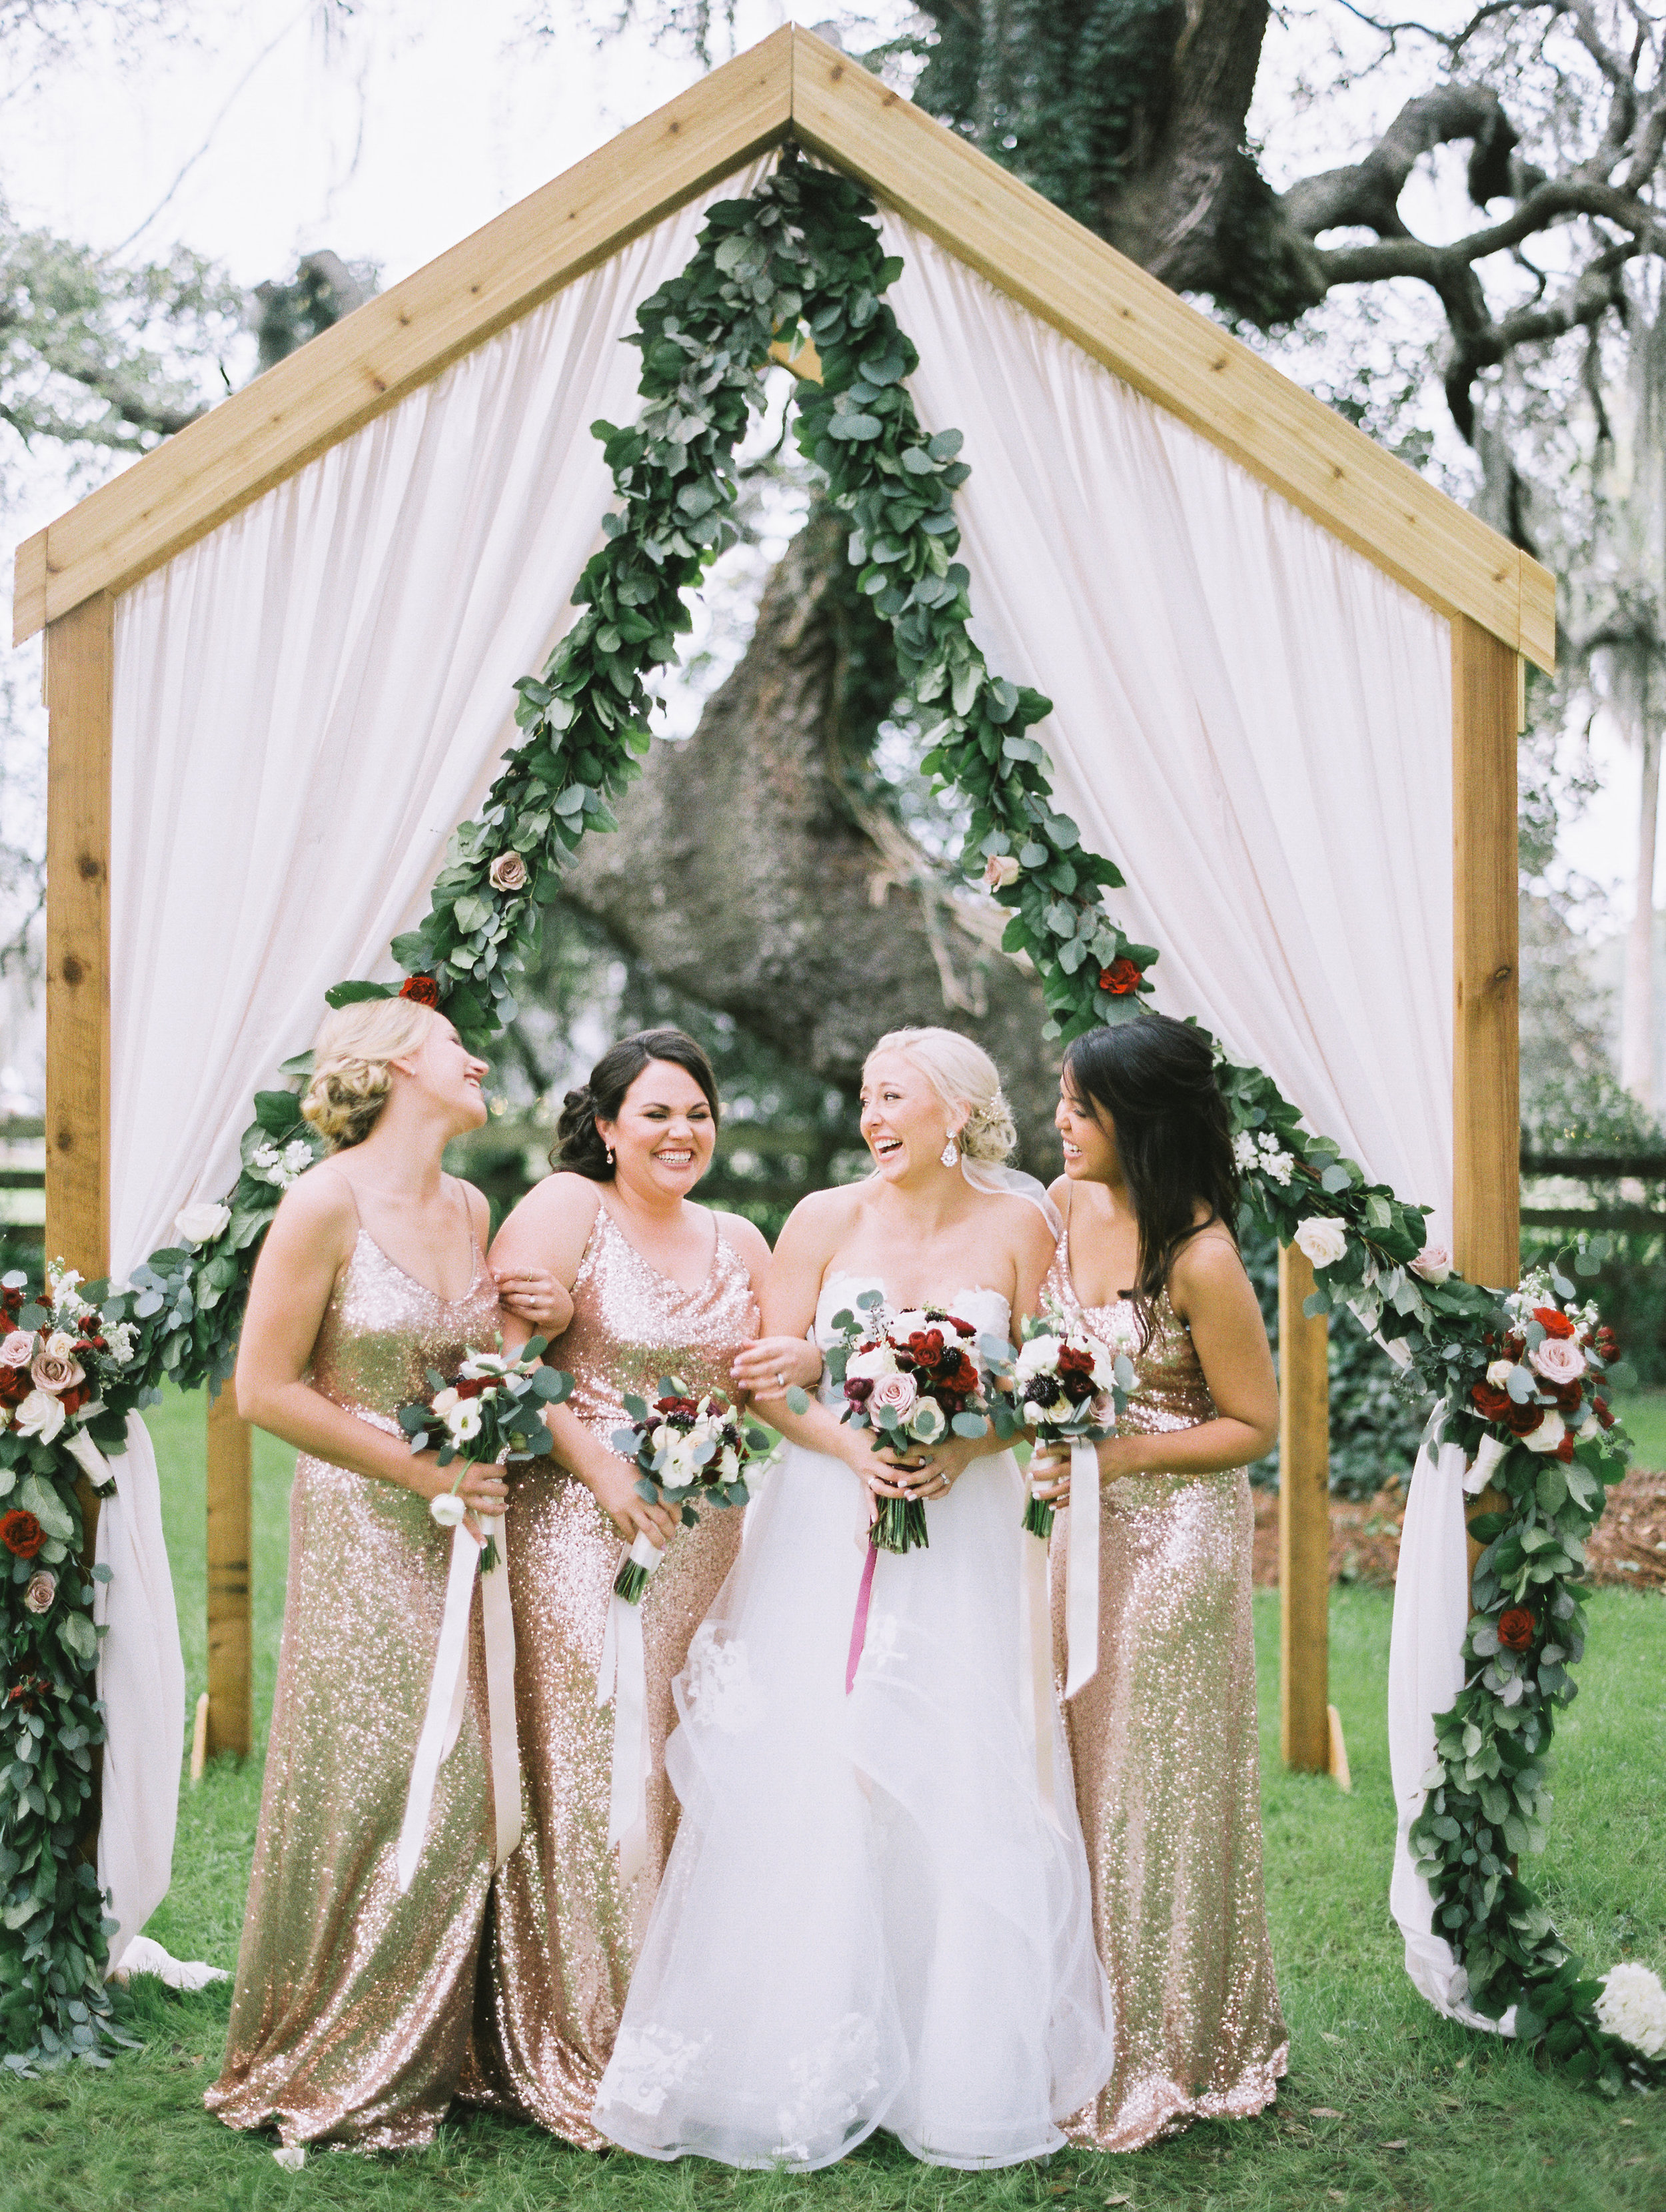 Cassie and her bridesmaids